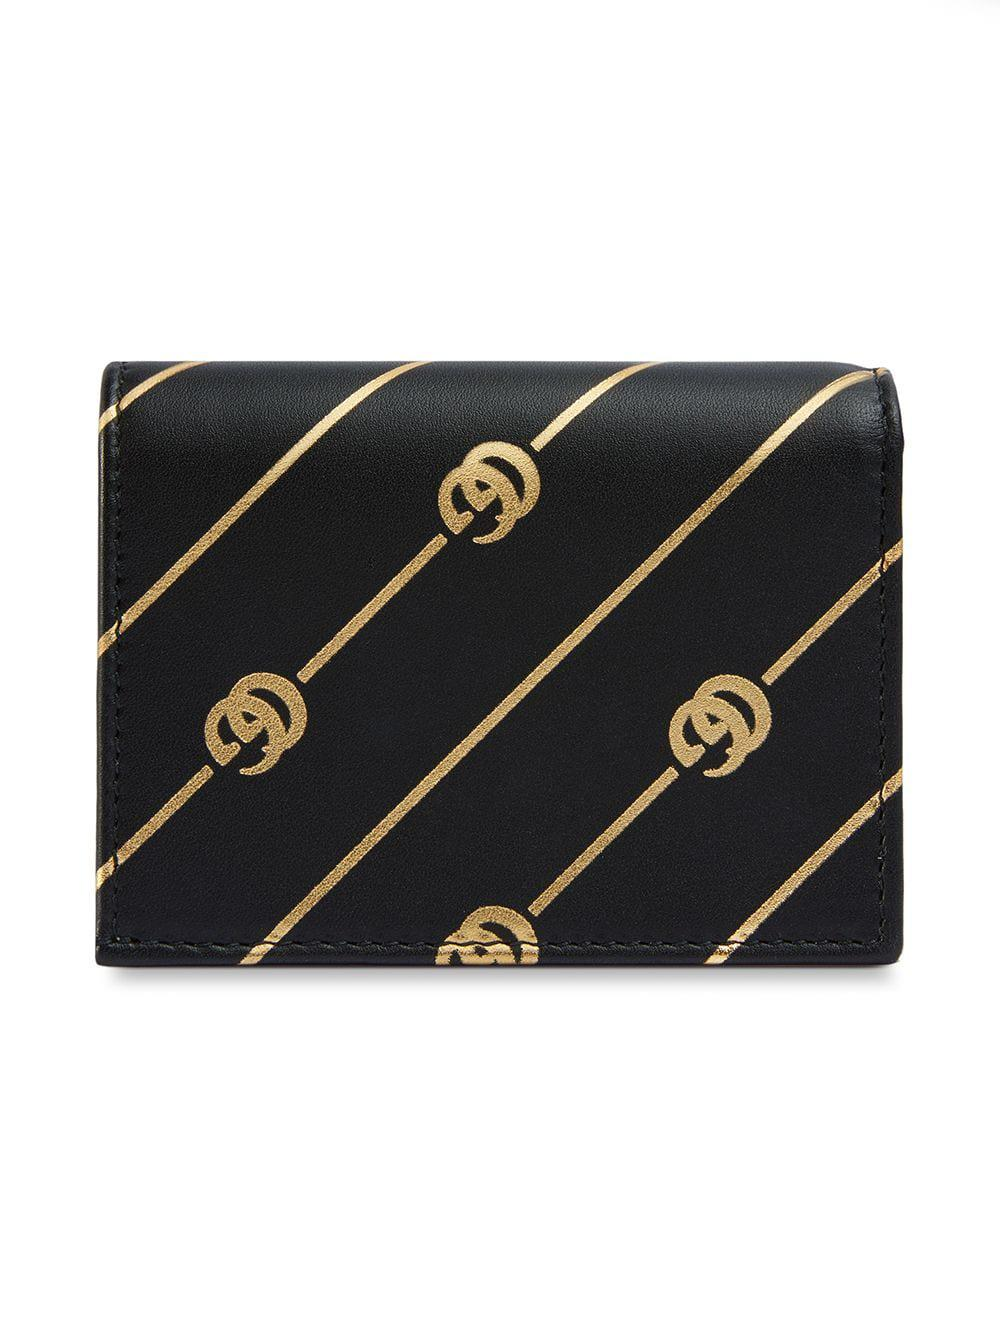 8eafaed88c5 Gucci - Black Printed Leather Cardholder - Lyst. View fullscreen